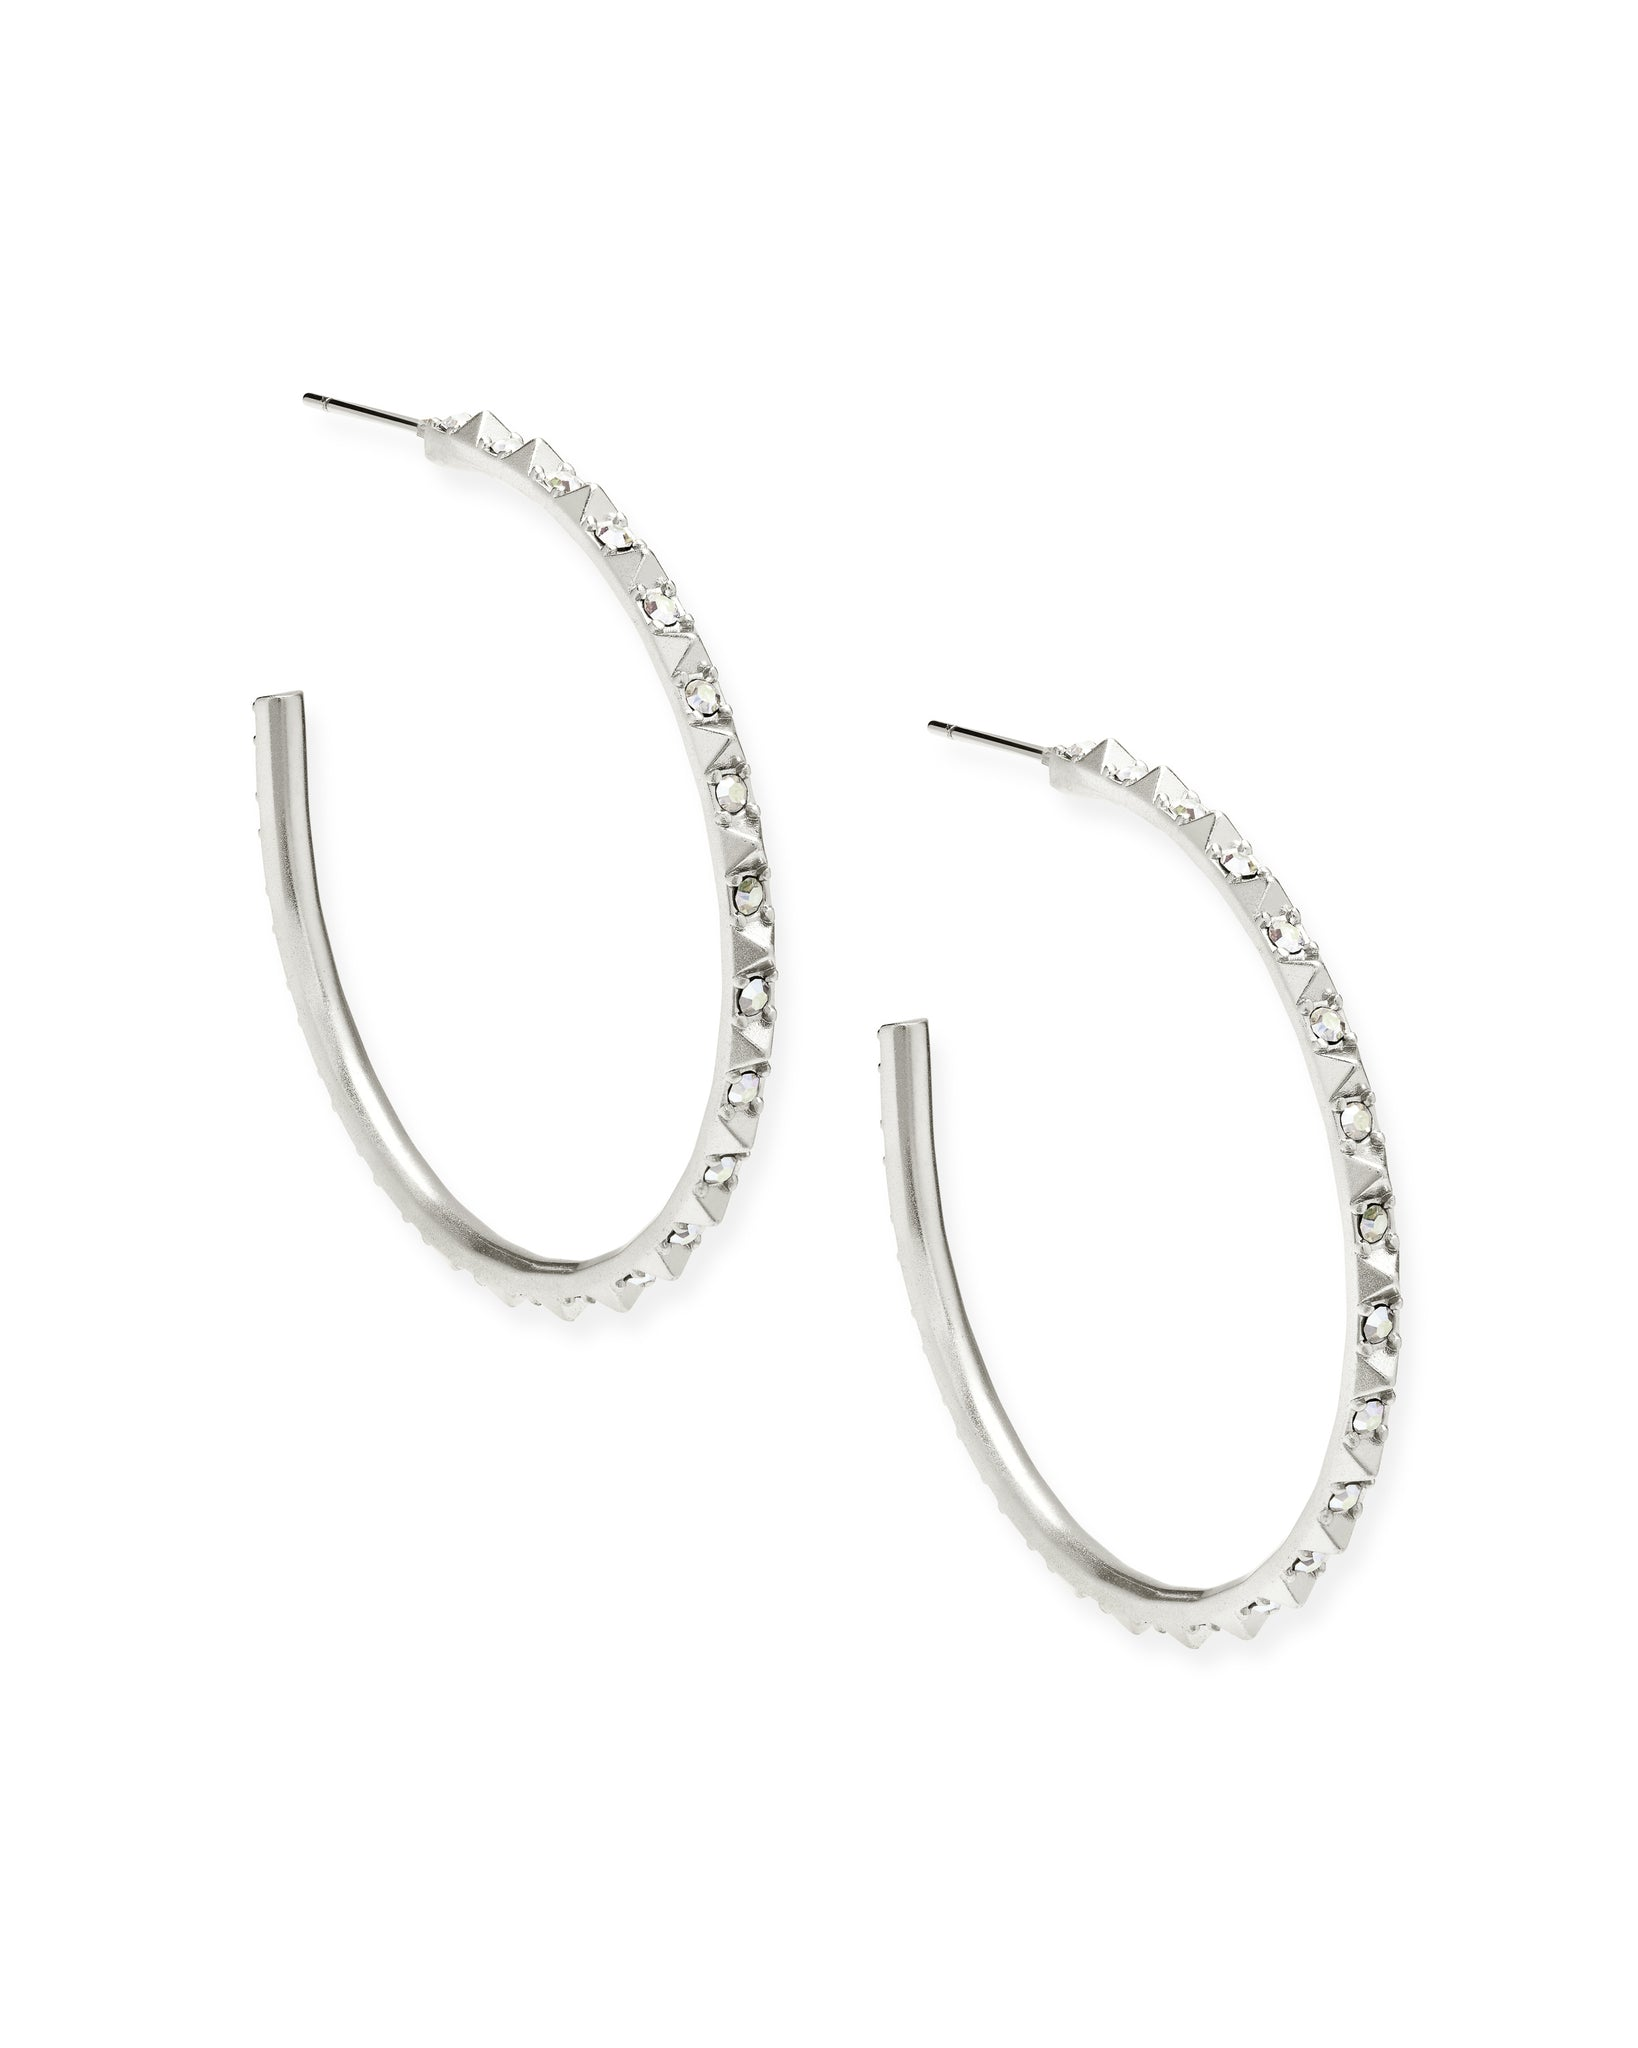 Kendra Scott Veronica Earring - Showroom56